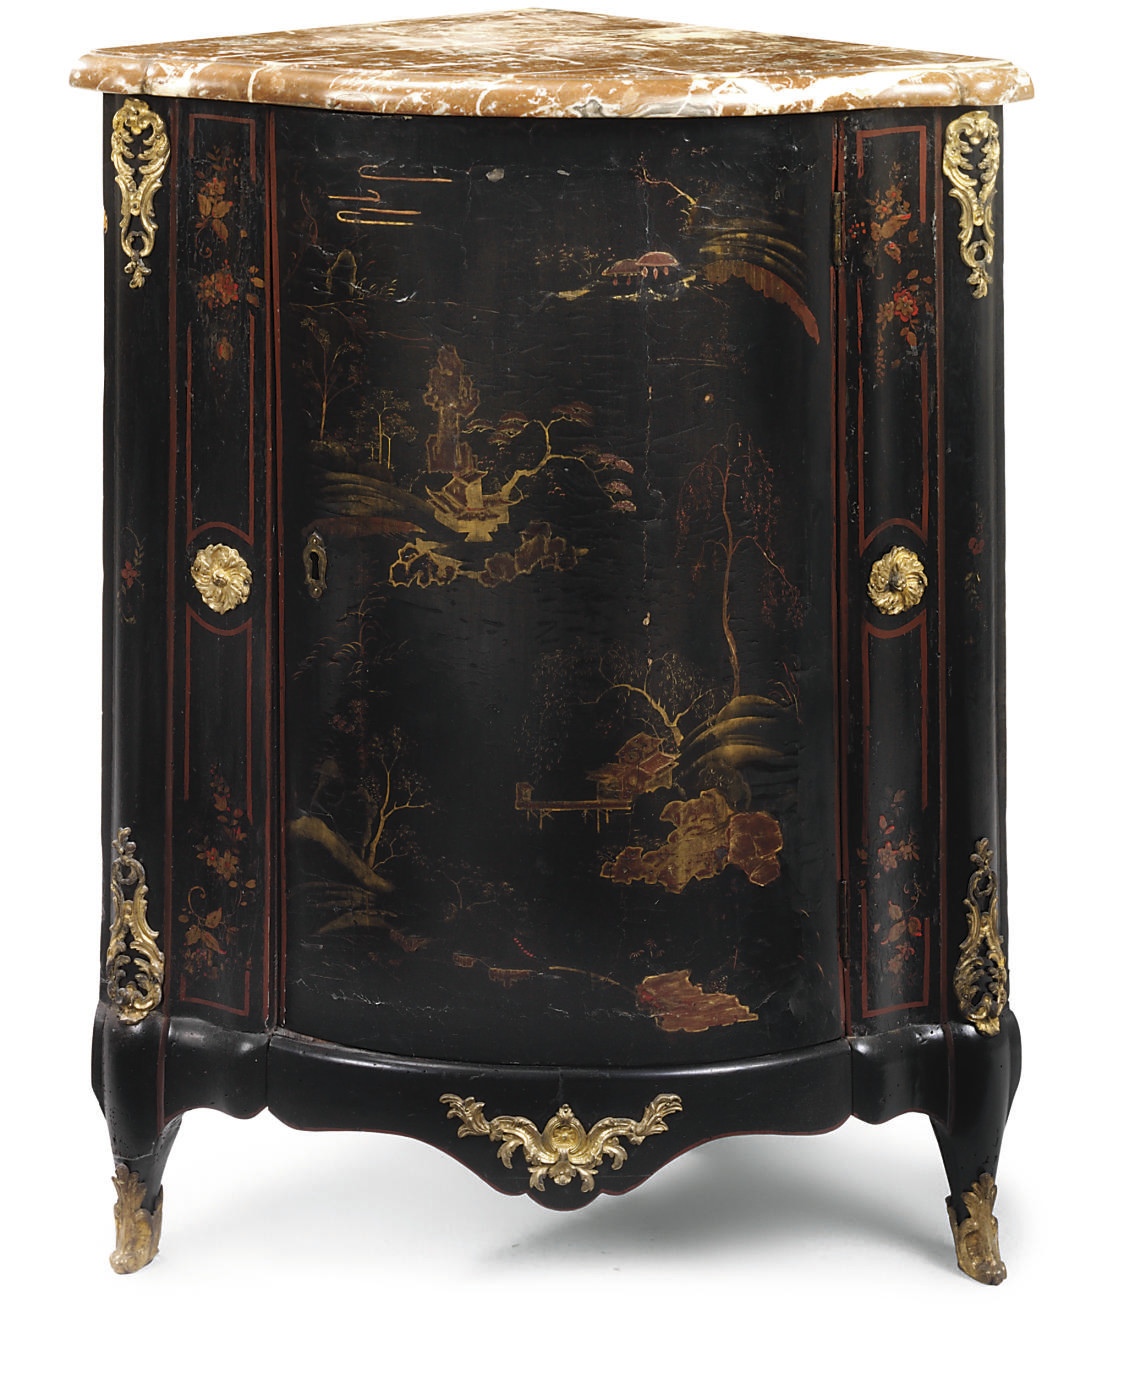 A LOUIS XV ORMOLU-MOUNTED CHINESE BLACK LACQUER AND VERNIS MARTIN ENCOIGNURE